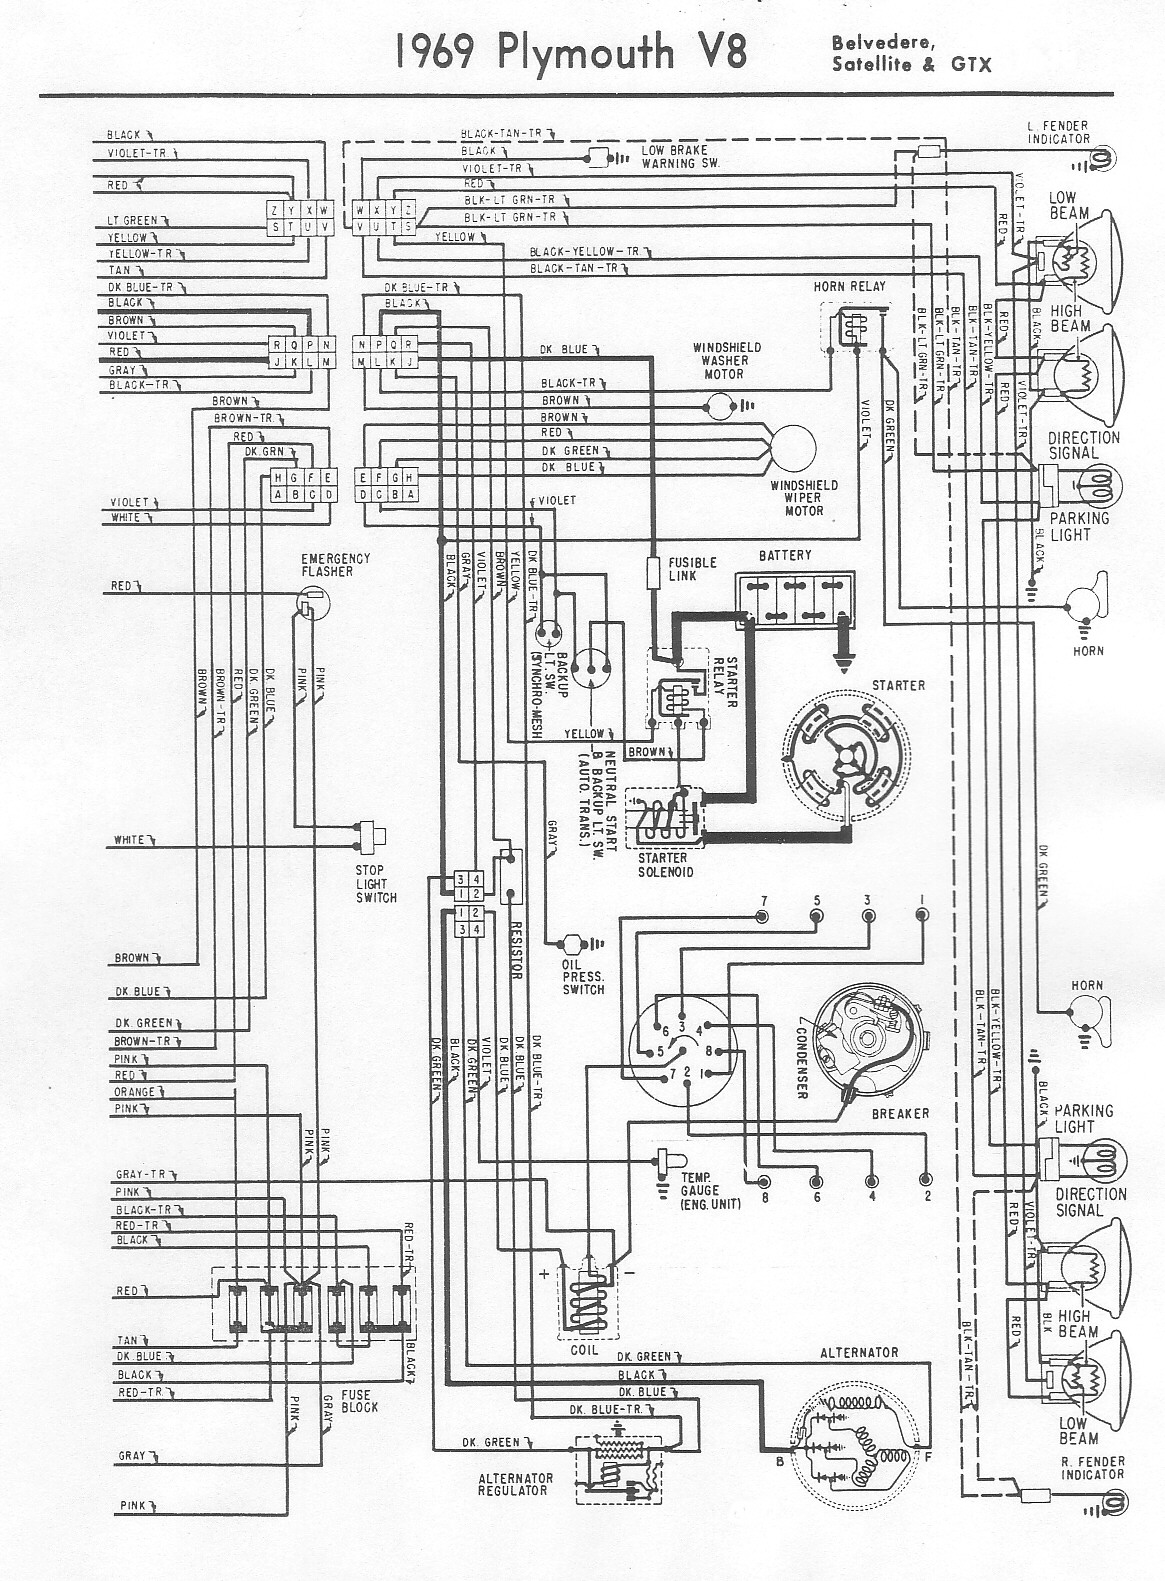 65 Dodge A100 Wiring Diagram Golden Schematic Club Car Additionally Ignition Coil 66 Mopar Wiper Simple Cuda 68 Coronet